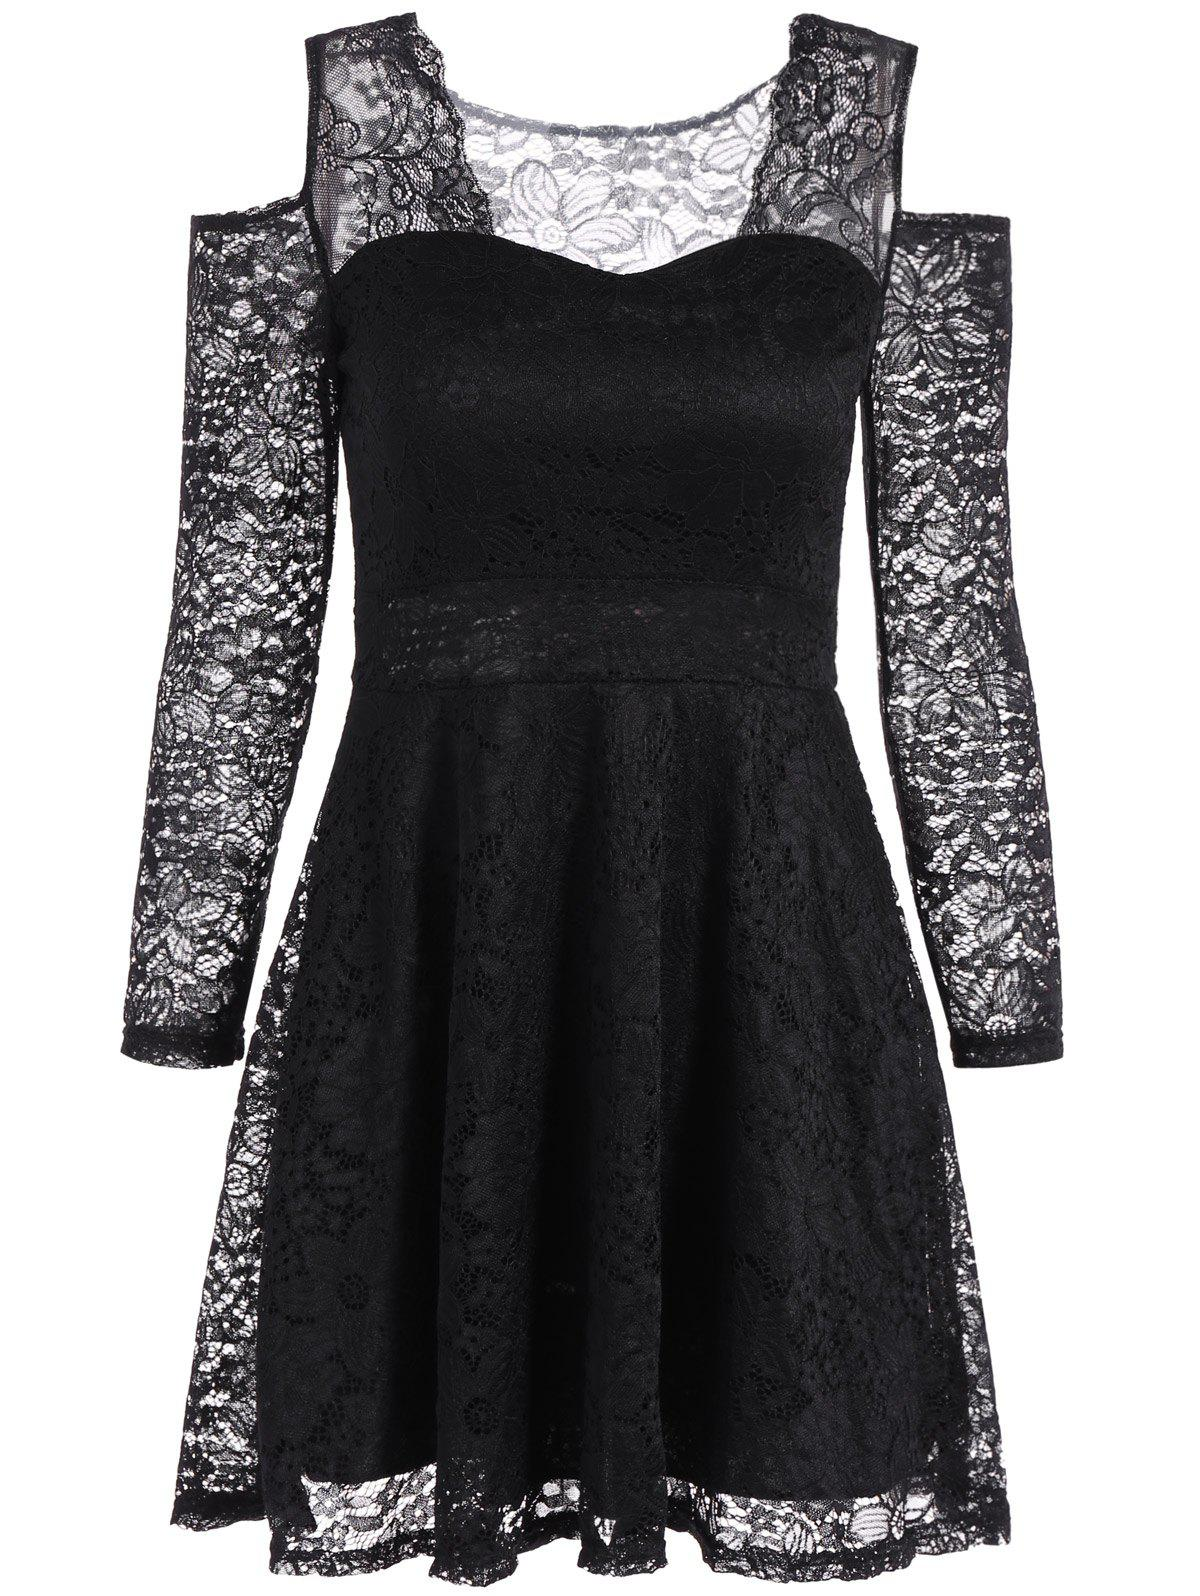 Cold Shoulder See Through Long Sleeve Lace Skater Mini Dress white see through crochet lace cold shoulder long sleeves dresses